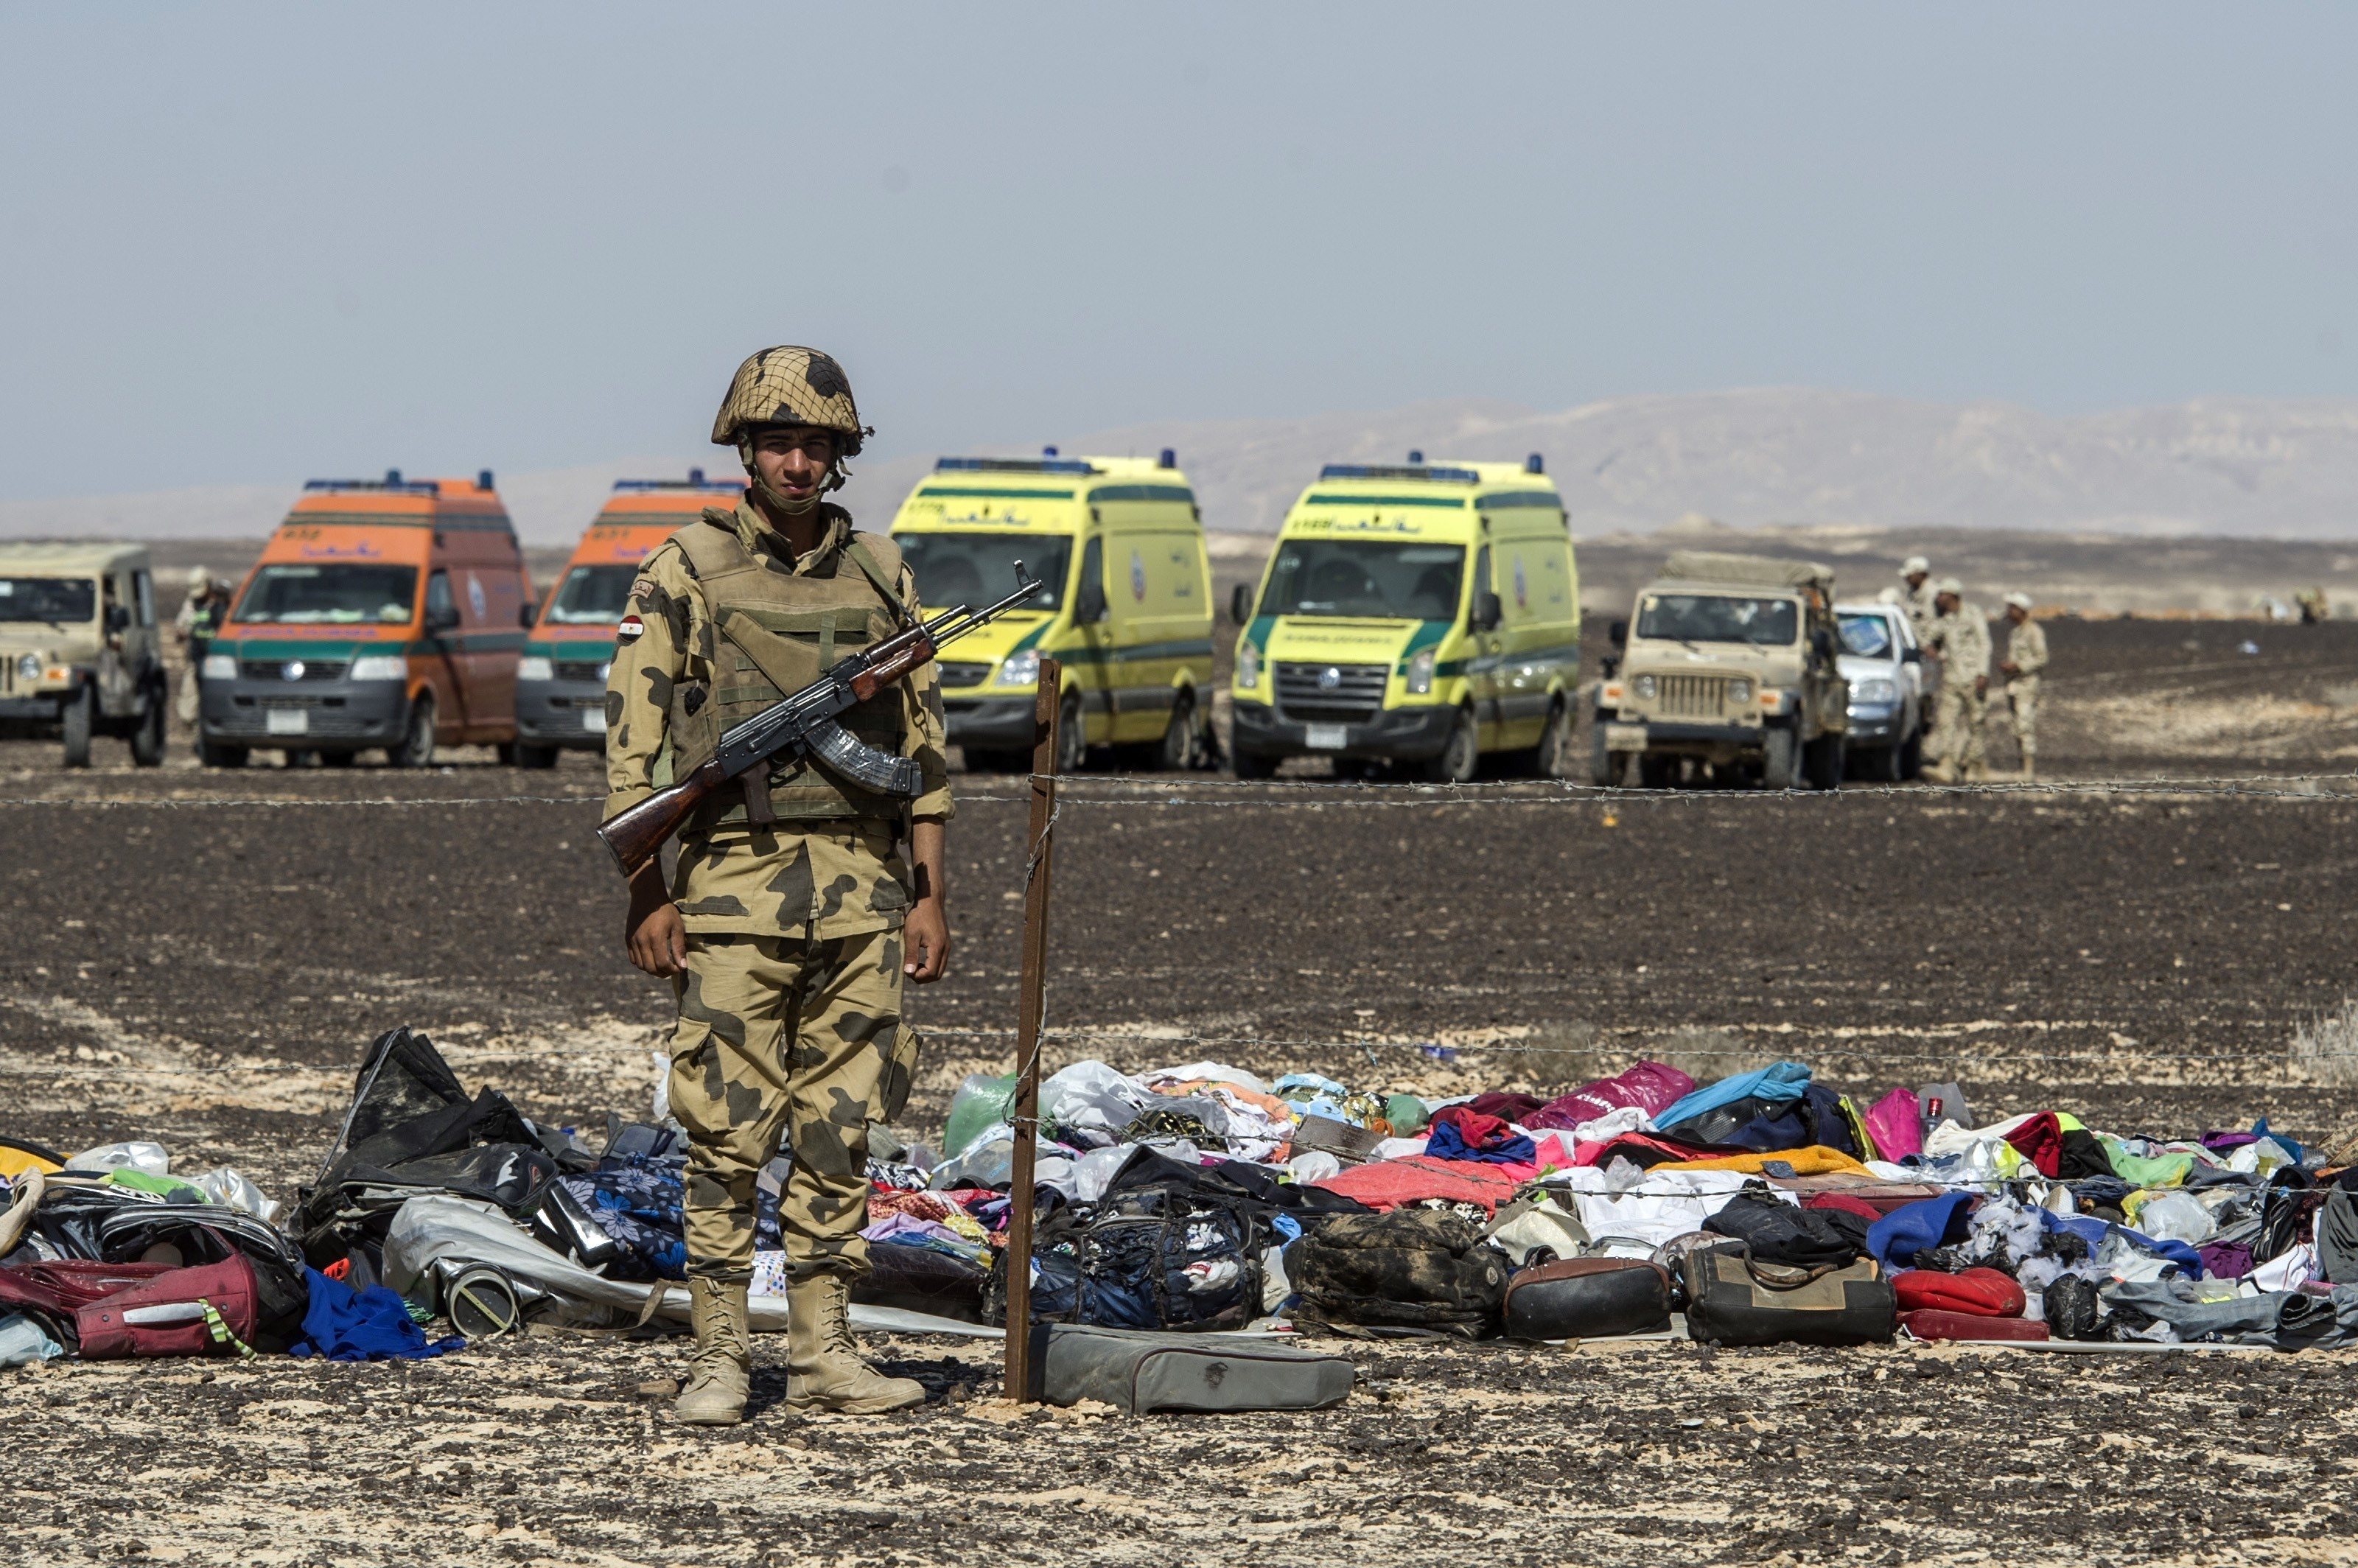 An Egyptian army soldier stands guard next to the luggage and belongings of passengers of the A321 Russian airliner piled up at the site of the crash in Wadi al-Zolomat, a mountainous area in Egypt's Sinai Peninsula on November 1, 2015.(KHALED DESOUKI/AFP/Getty Images)